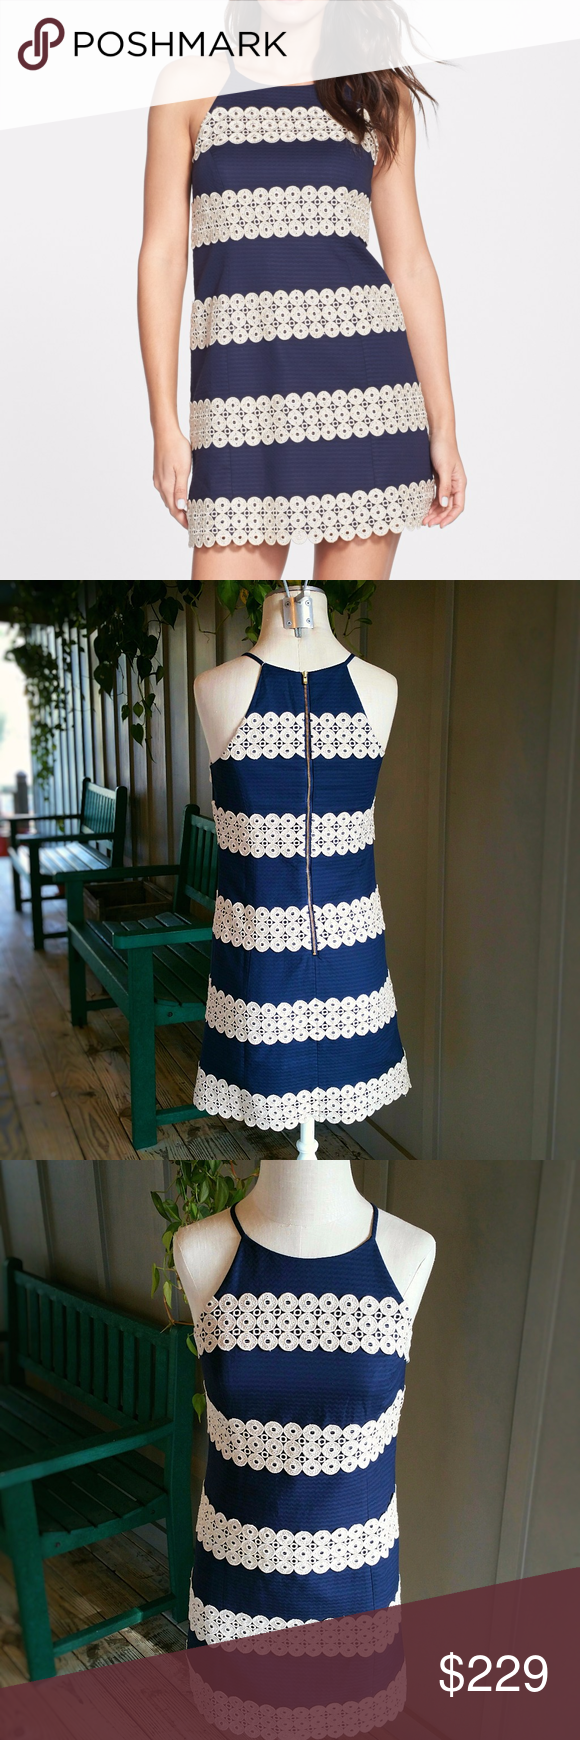 e3e381505e7 Lilly Pulitzer Annabelle Shift Dress Navy Stripe Annabelle  Lace Appliqué  Shift Dress by LILLY PULITZER